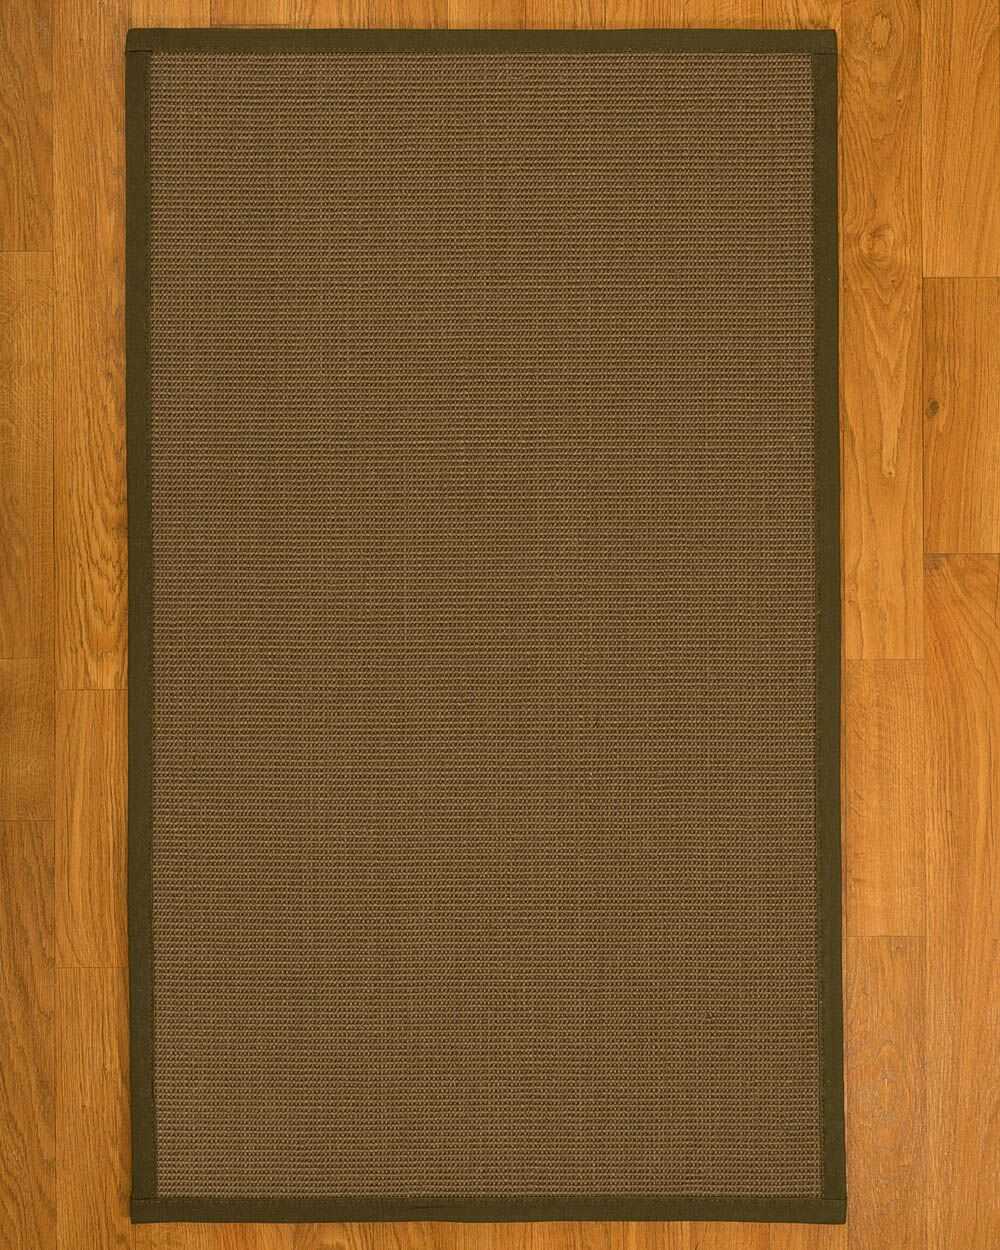 Aderyn Hand-Woven Brown Area Rug Rug Size: Rectangle 8' X 10'